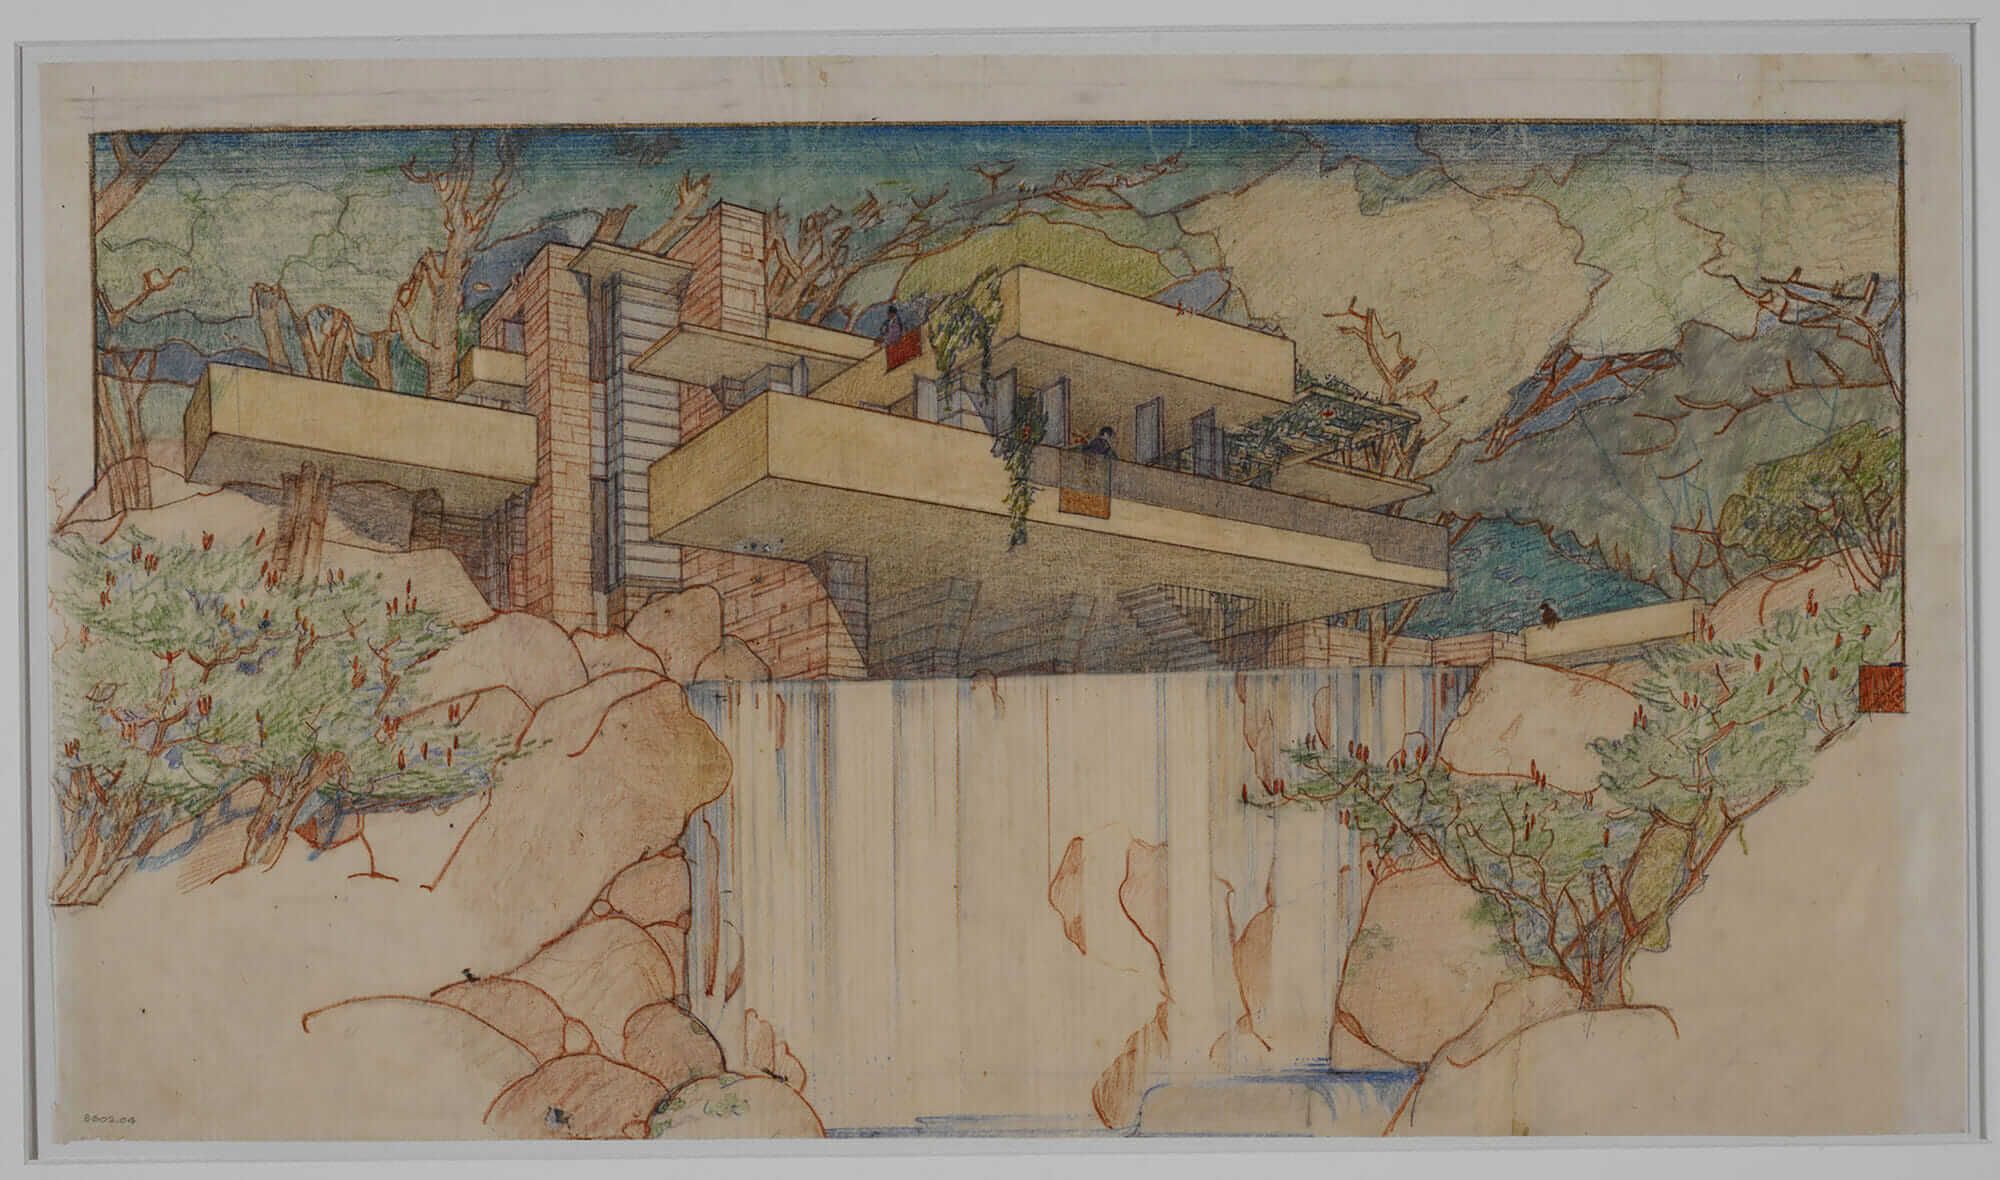 frank lloyd wright designs Fallingwater drawing